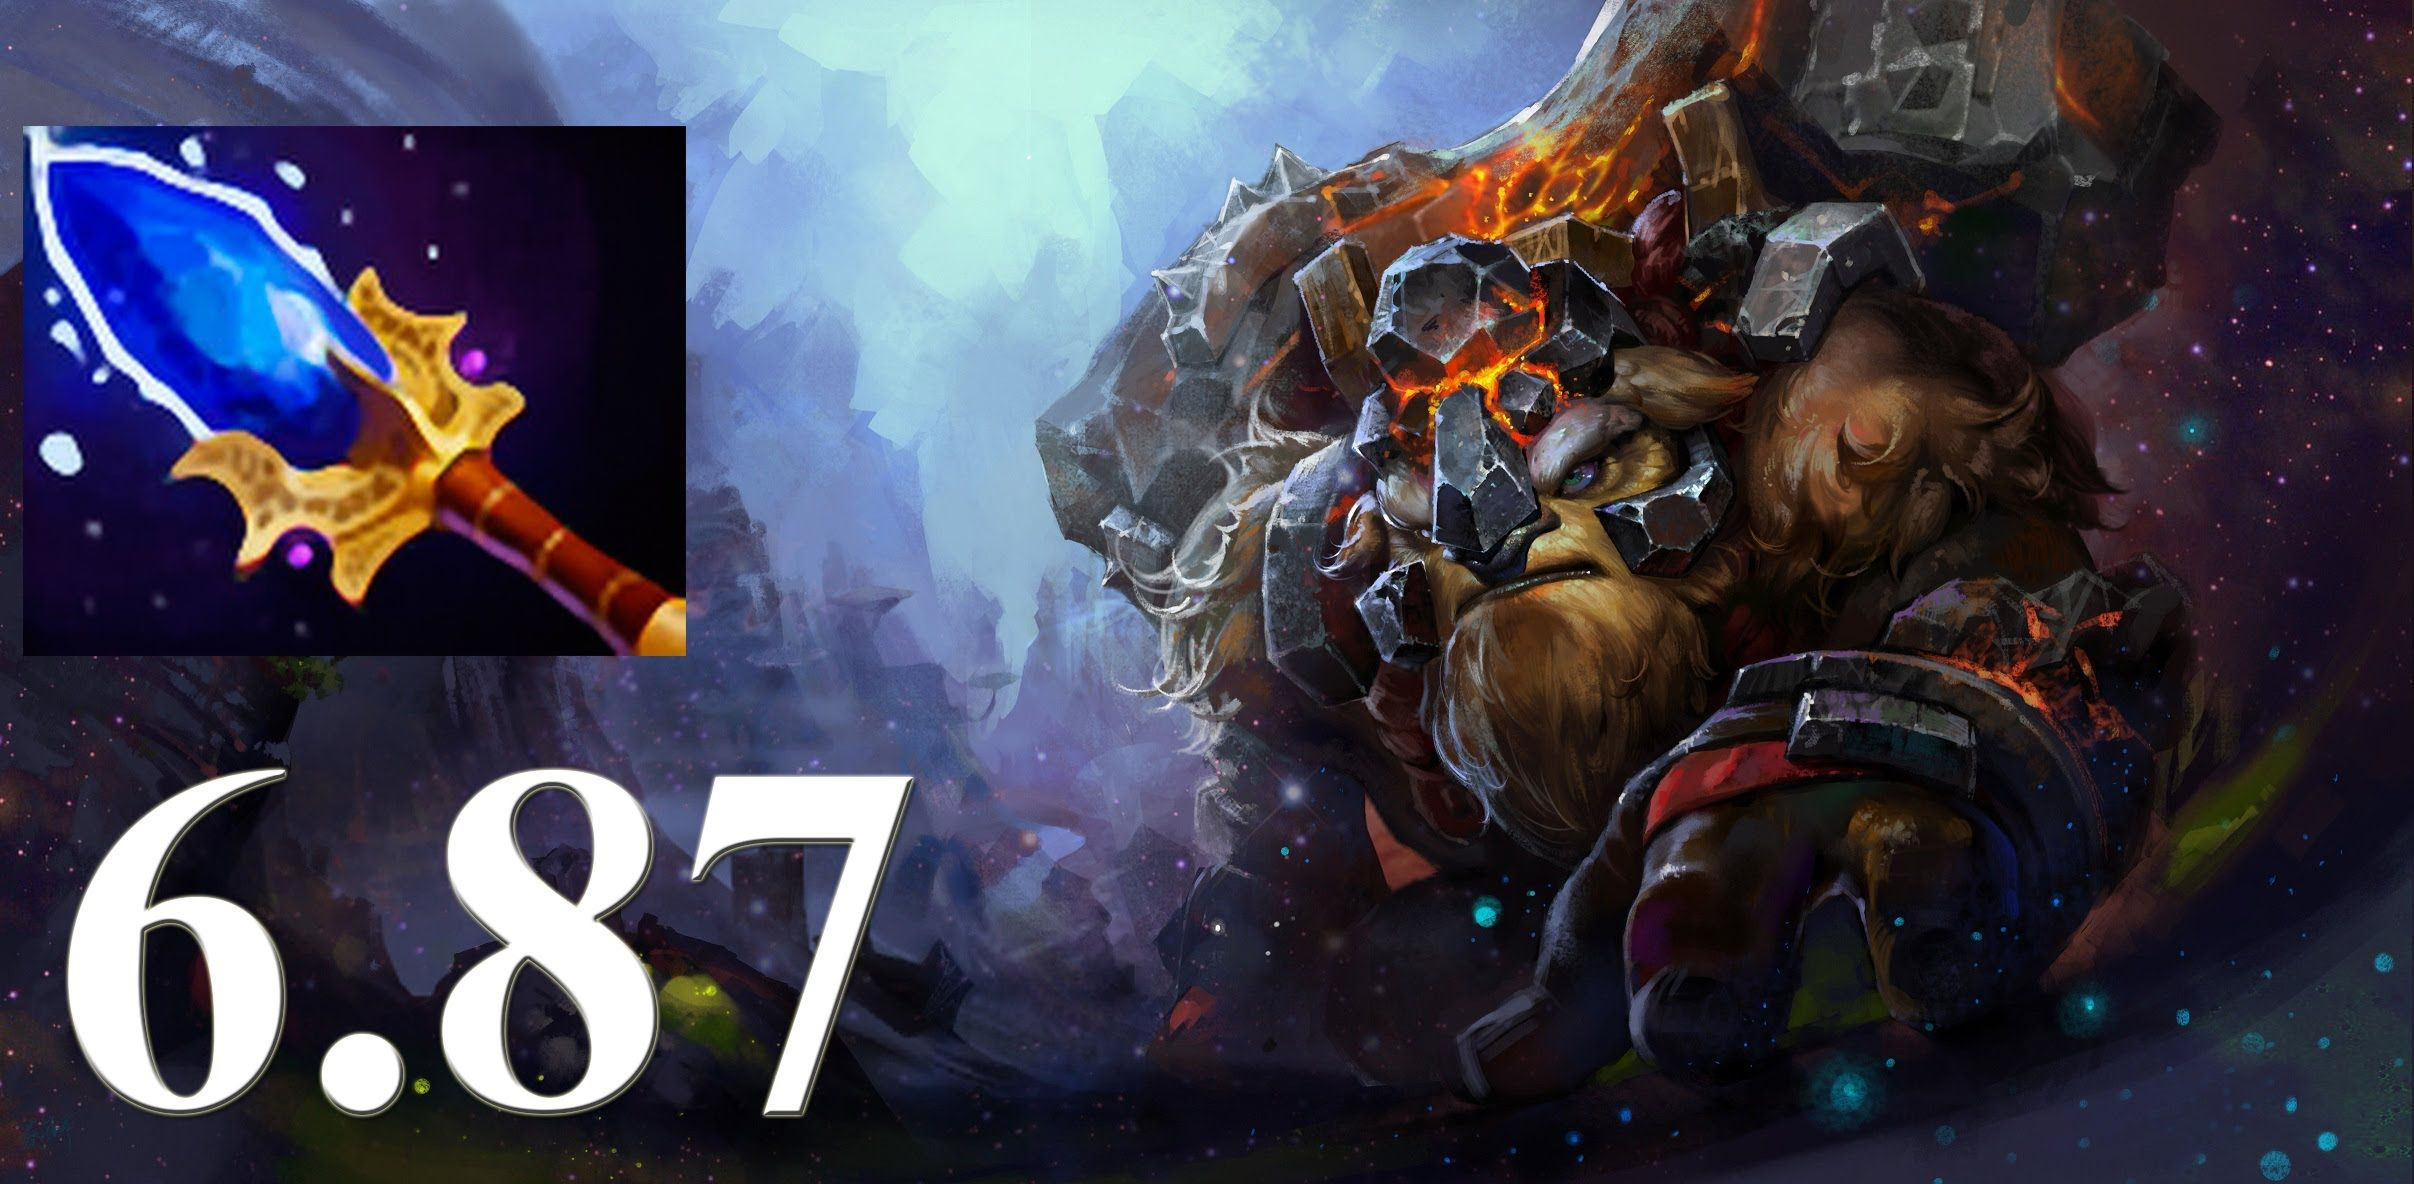 Dota 2 6.87 Earthshaker New Scepter Upgrade!